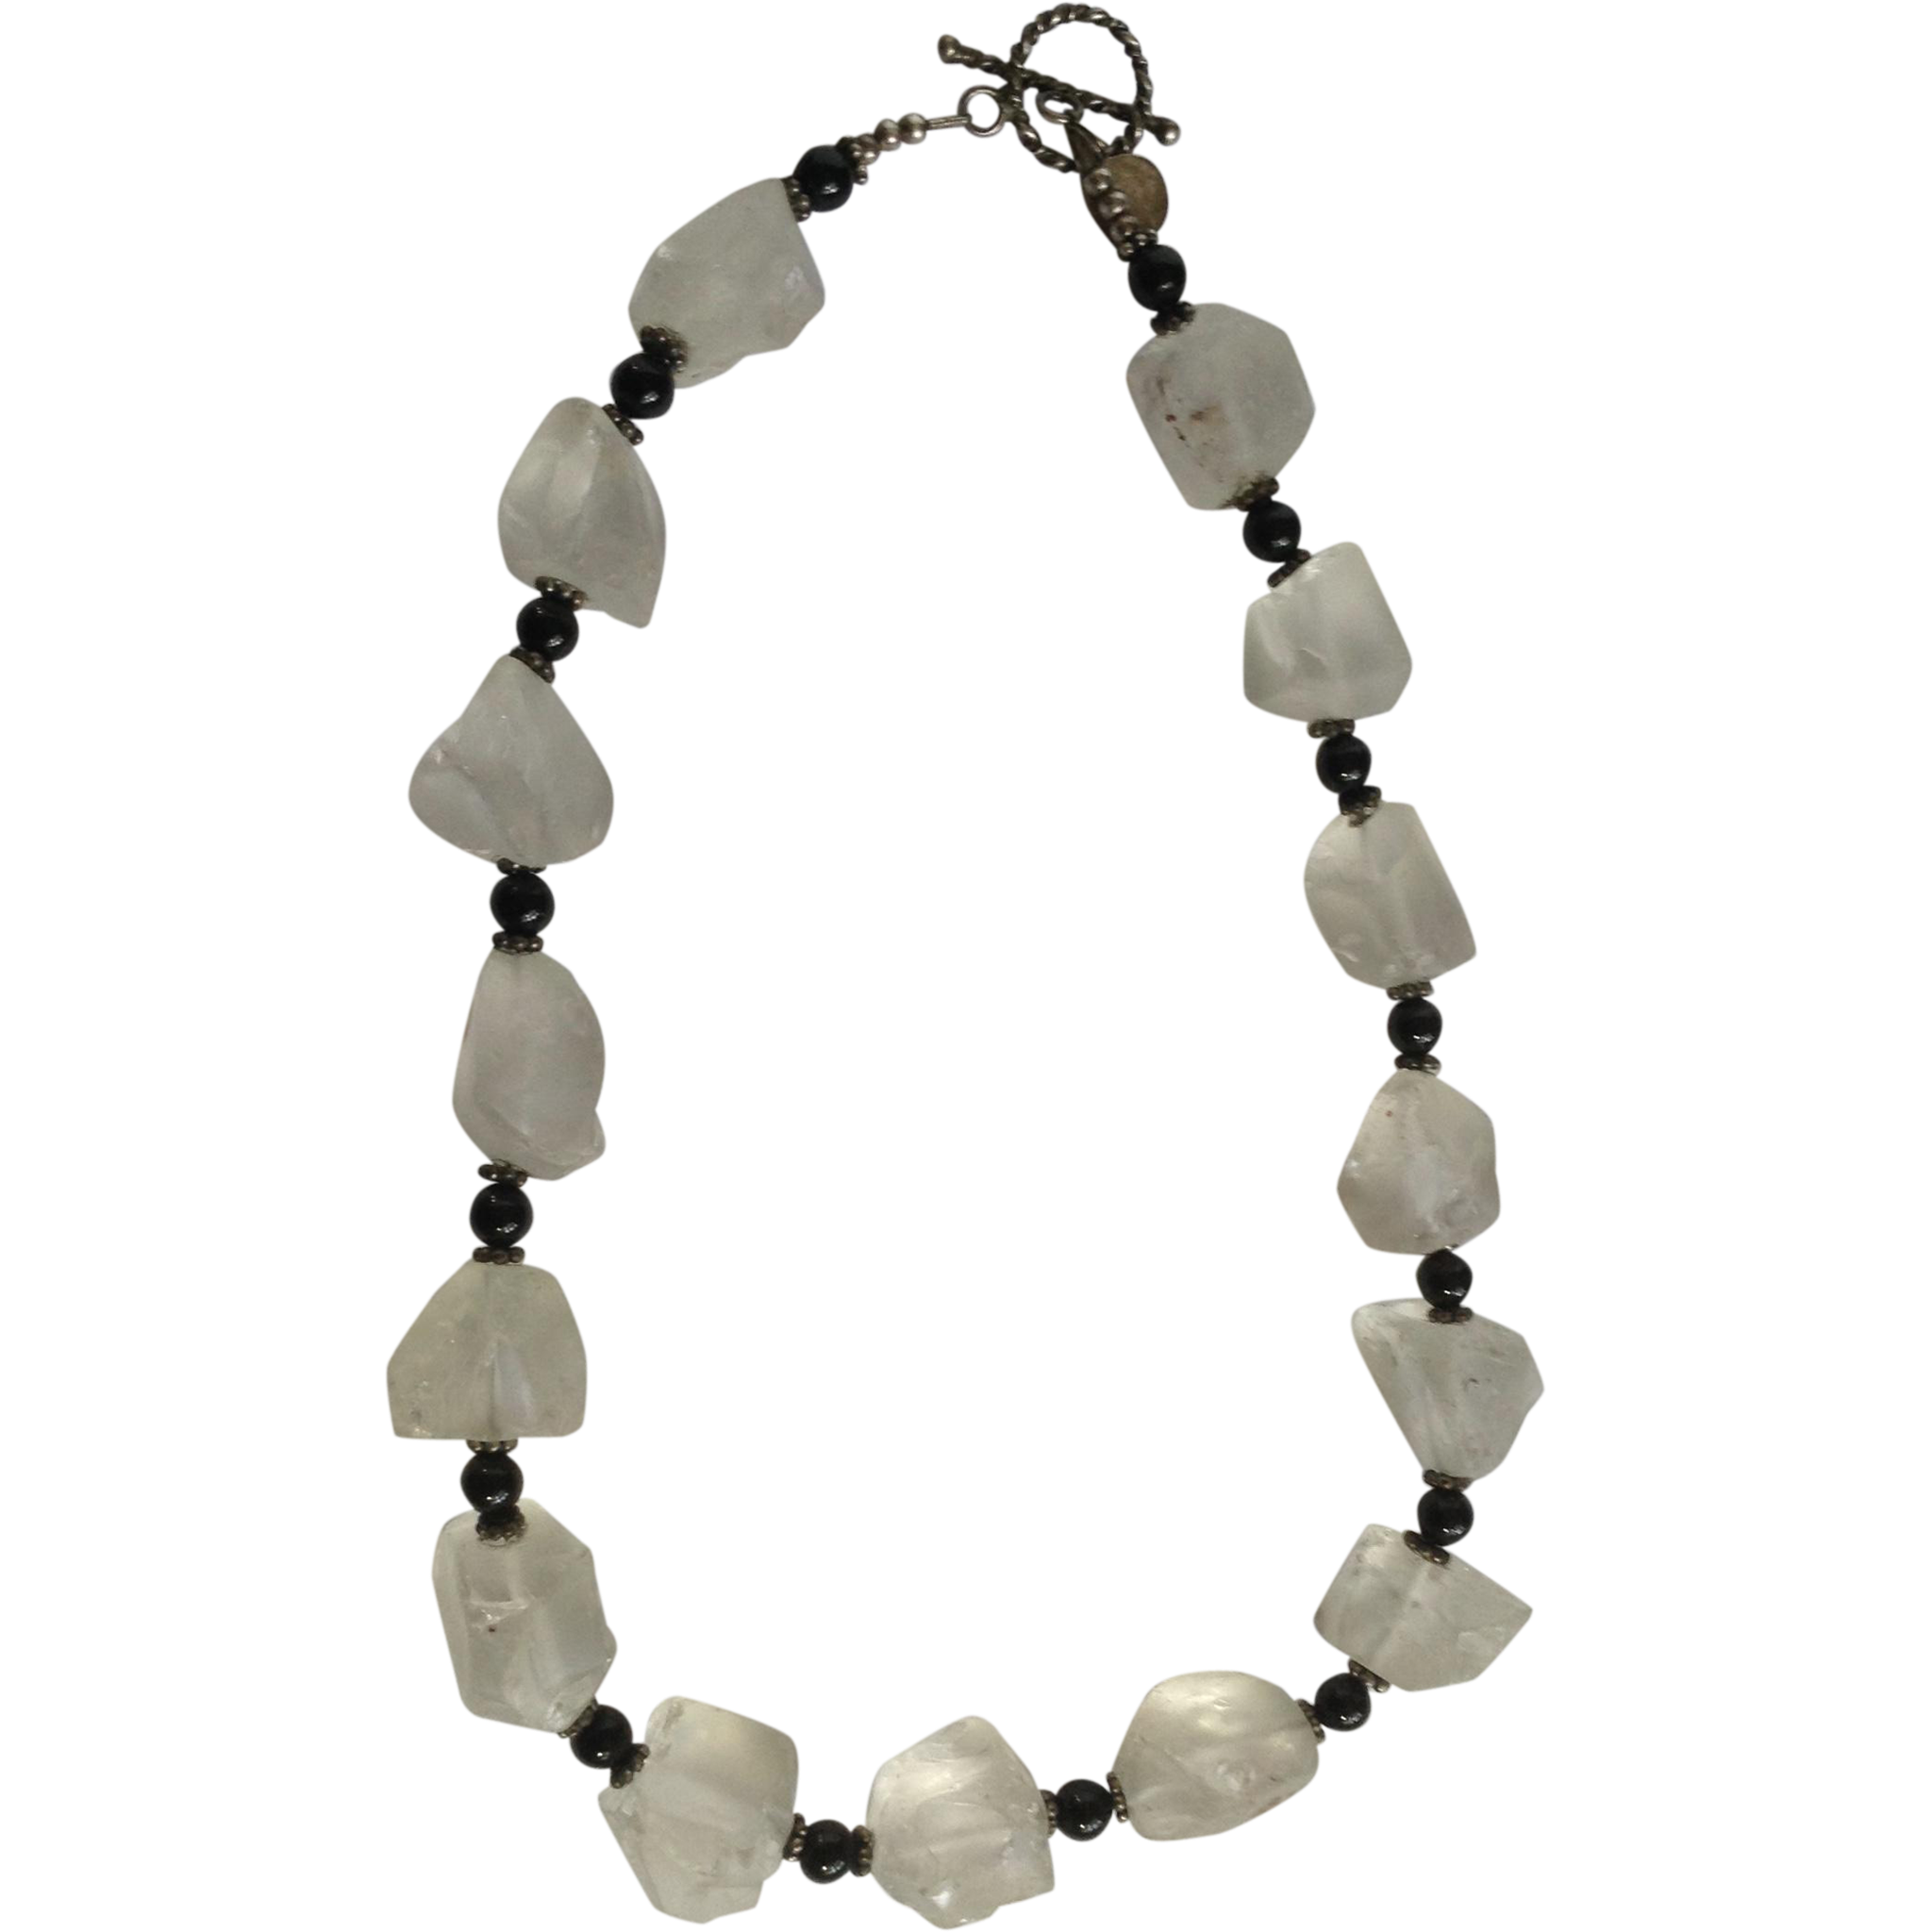 d braziliangemstones shell metal quartz necklace silver e shop natural druzy crystal eu with gemstone pendant